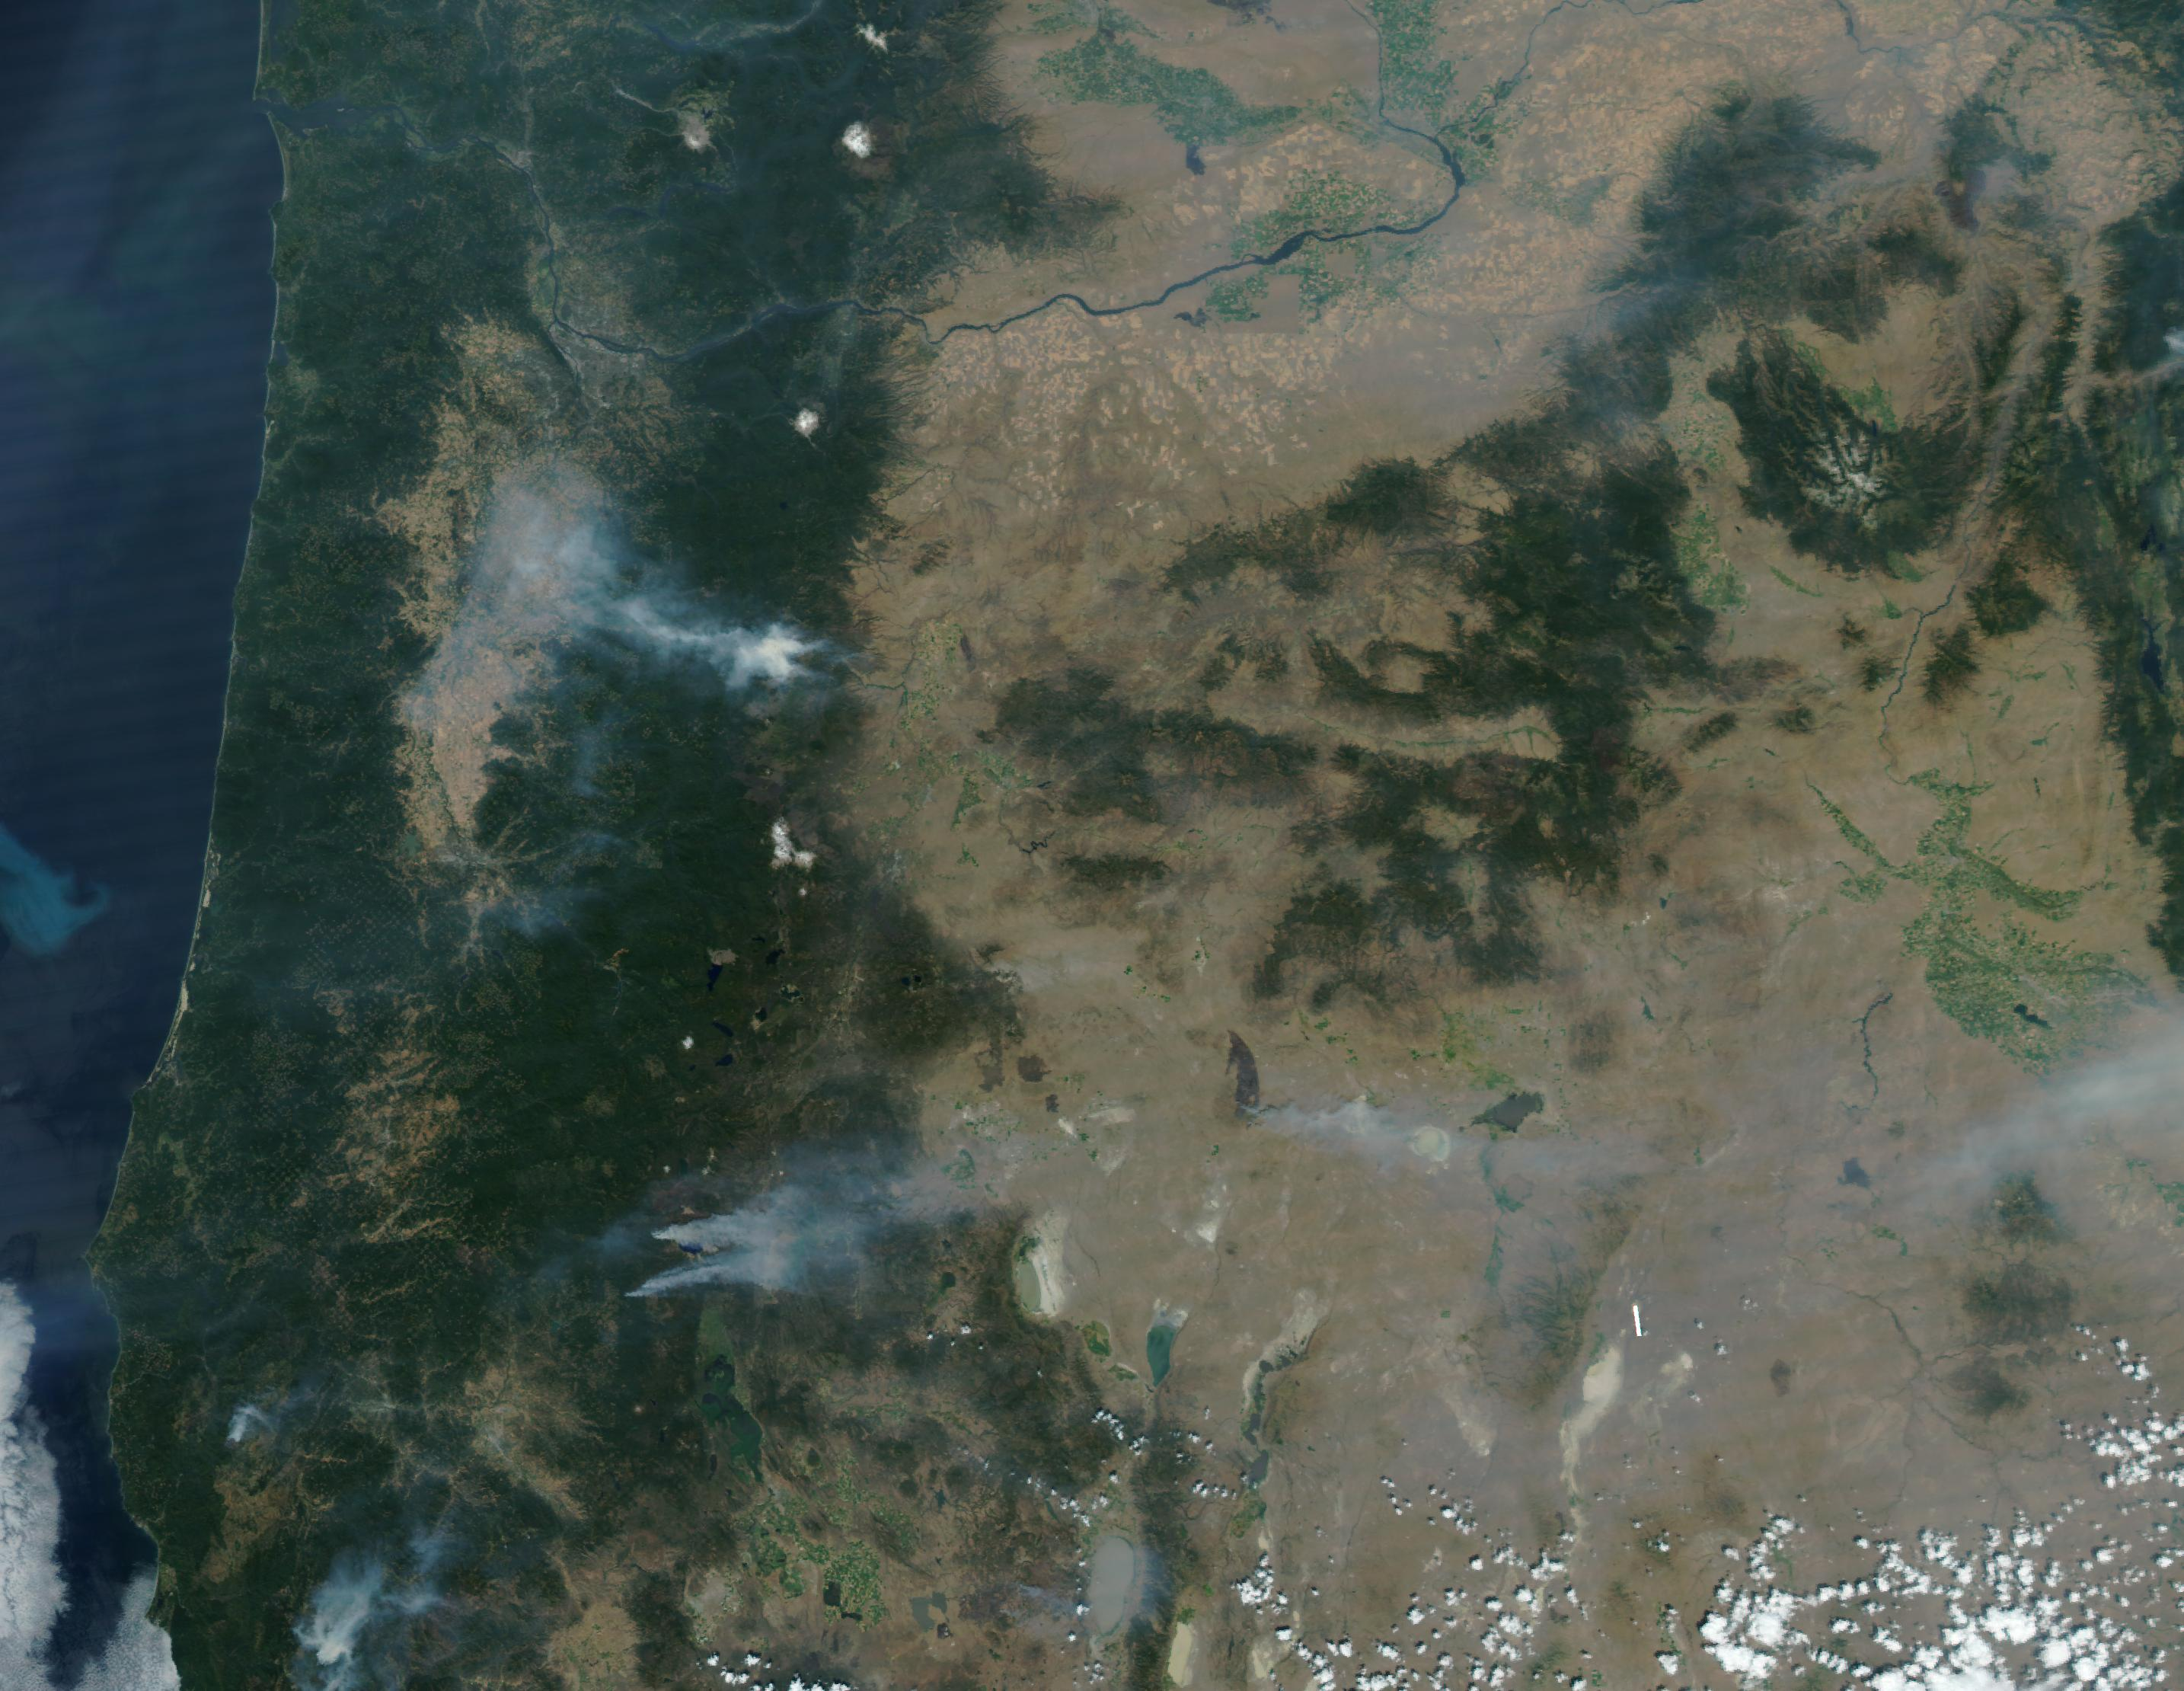 NASA satellite image from August 3 shows the Blanket and Spruce Lake Fires burning near Crater Lake National Park.